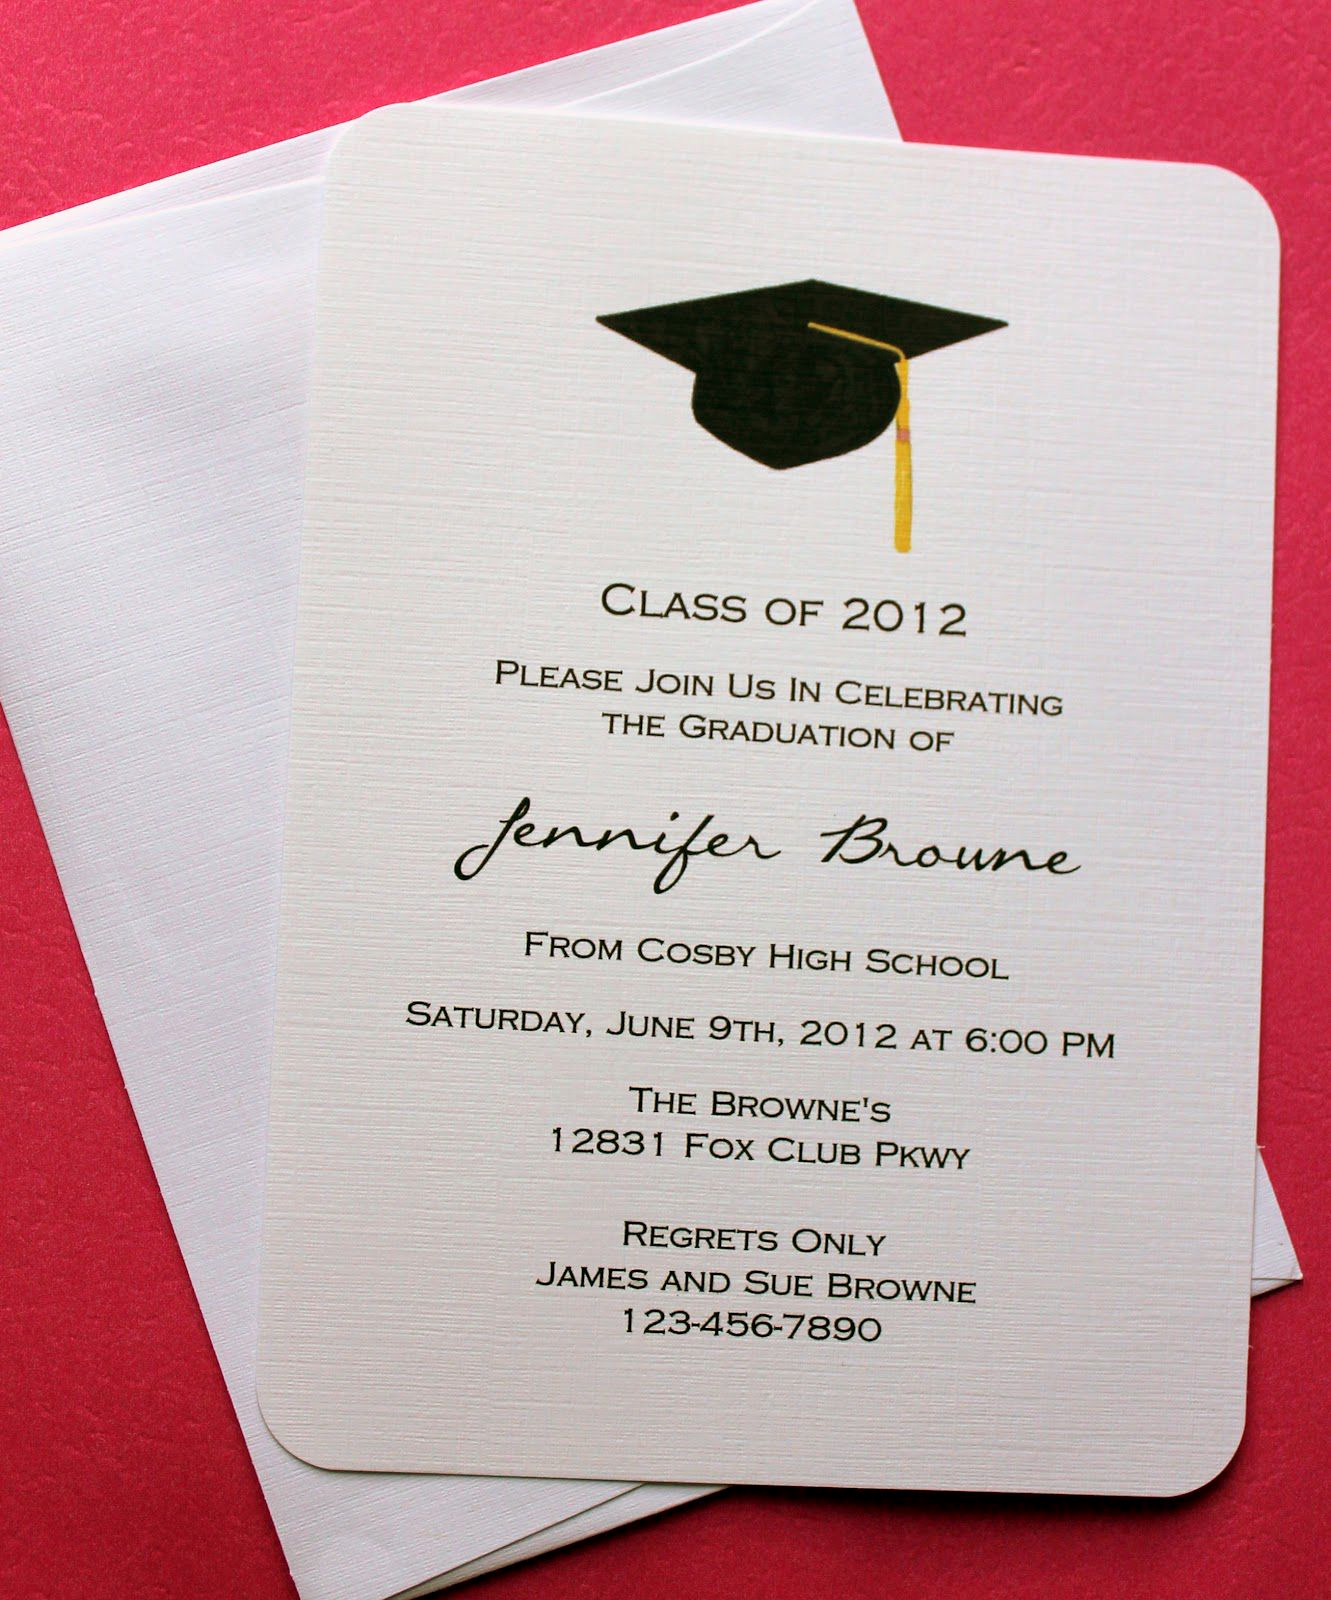 Graduation Invitation Templates Free Download Luxury Graduation Invitation Template Graduation Invitation